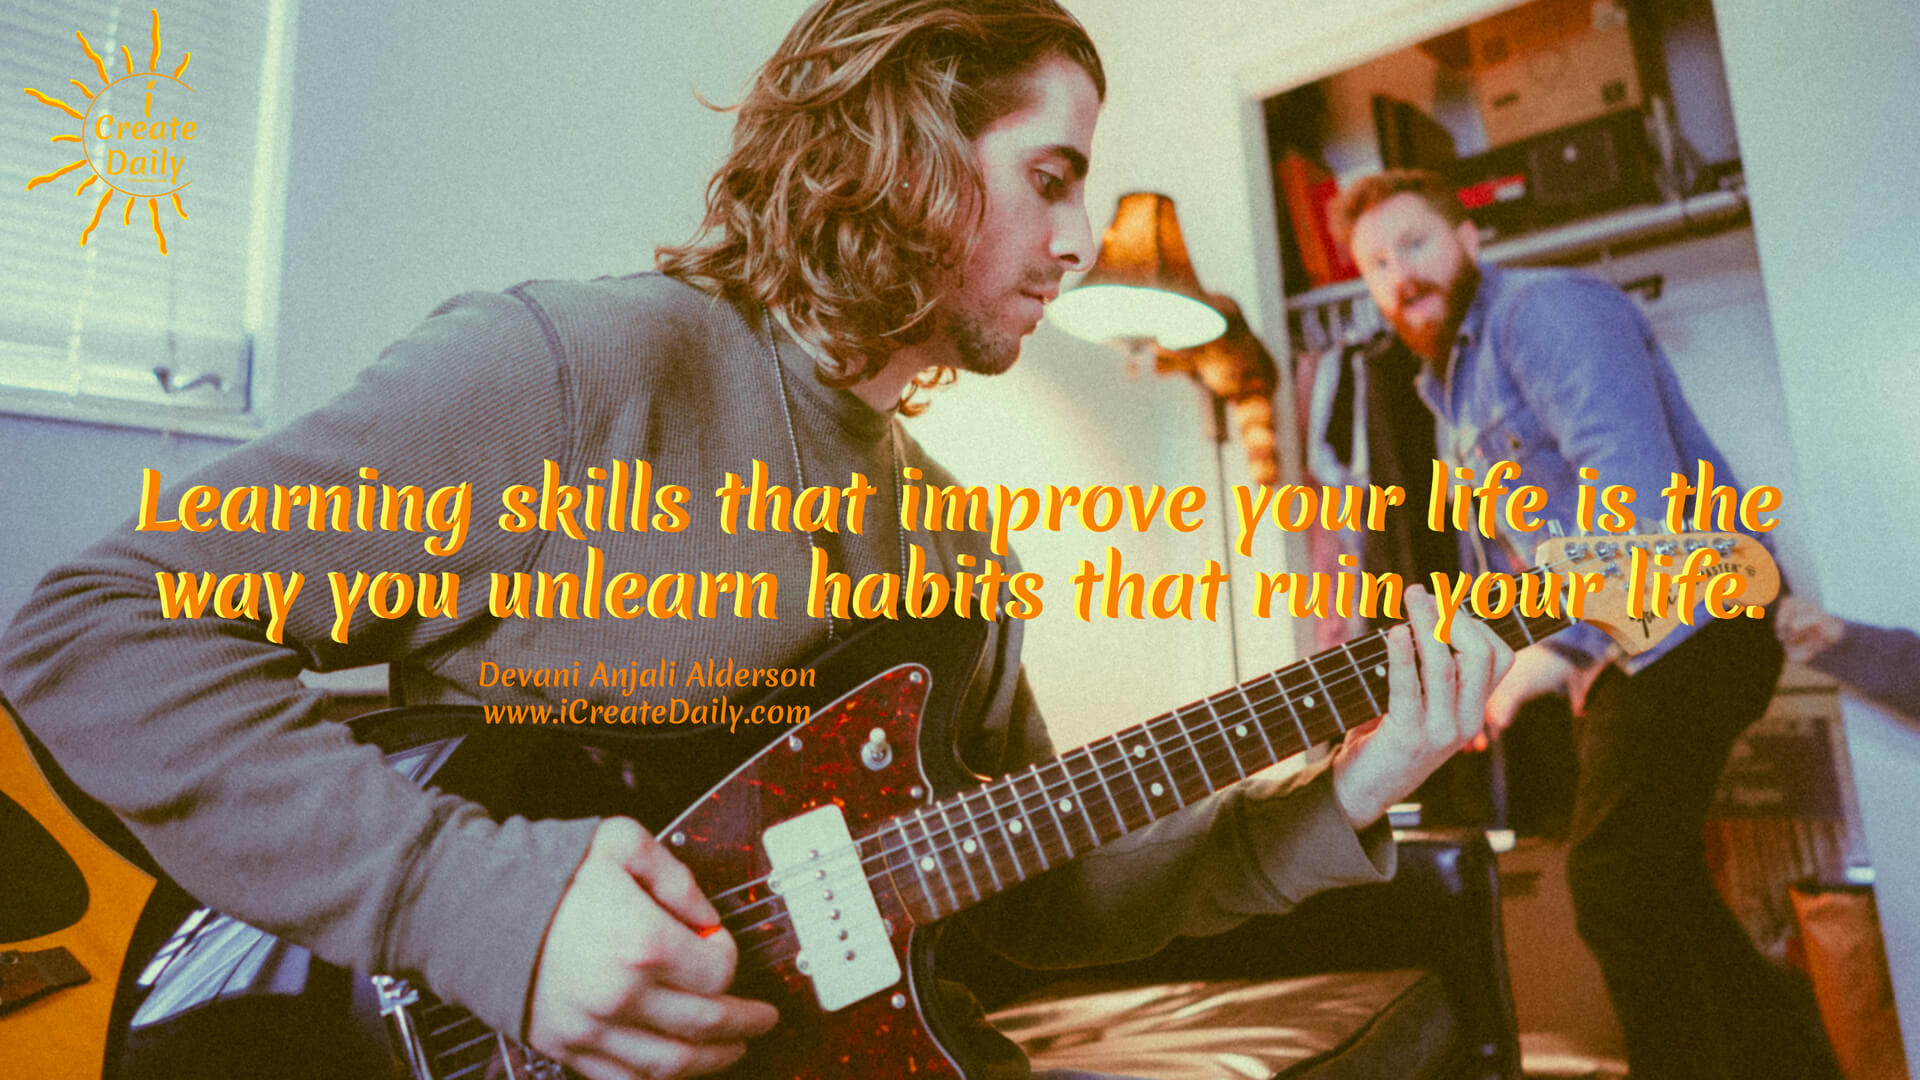 """Learning skills that improve your life is the way you unlearn habits that ruin your life."" ~ Devani Anjali Alderson, cofounder-iCreateDaily.com® #FreedomQuotes #Motivation #Inspirational #SelfImprovement #PersonalDevelopment #Positivity #GoodHabits"